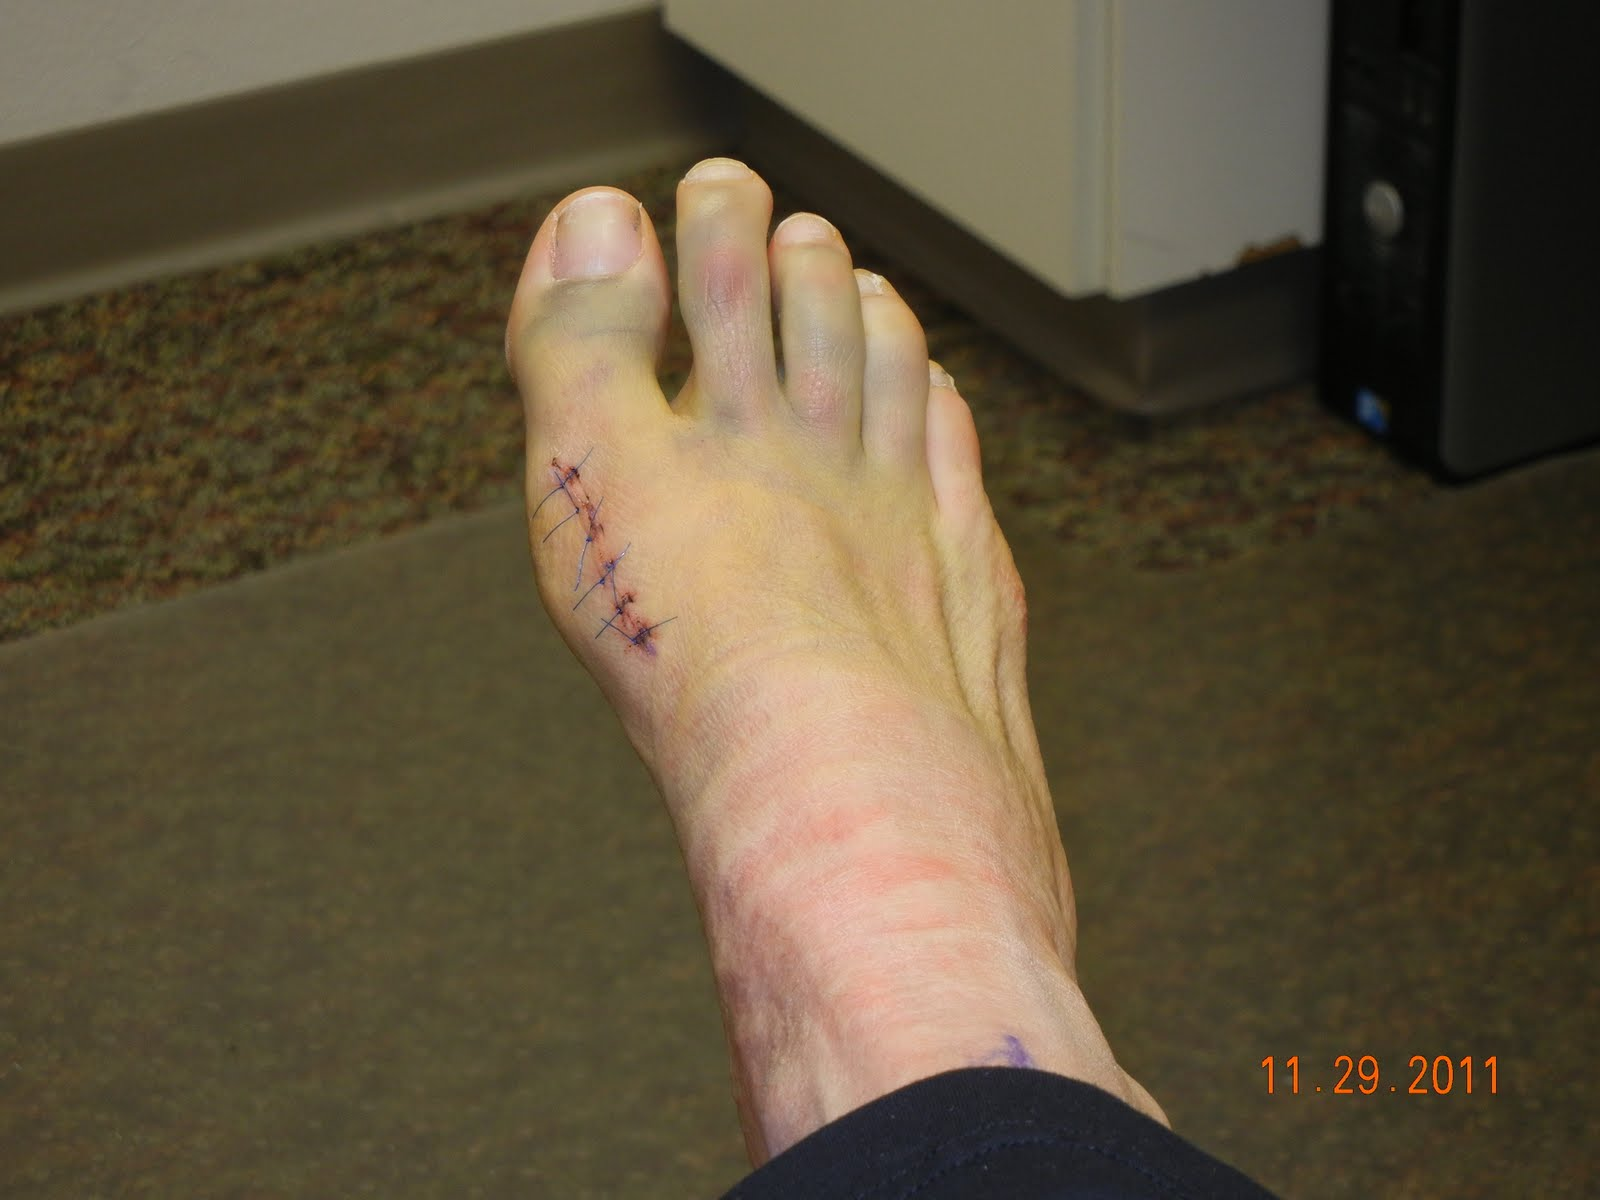 Downs Bunion Surgery 11.17.2011 Hallux Valgus Deformity with Metatarsal  Osteotomy - Screw Fixation: Day 12 - 2nd Post Op Visit (Photo Gallery -  Stitches Out)